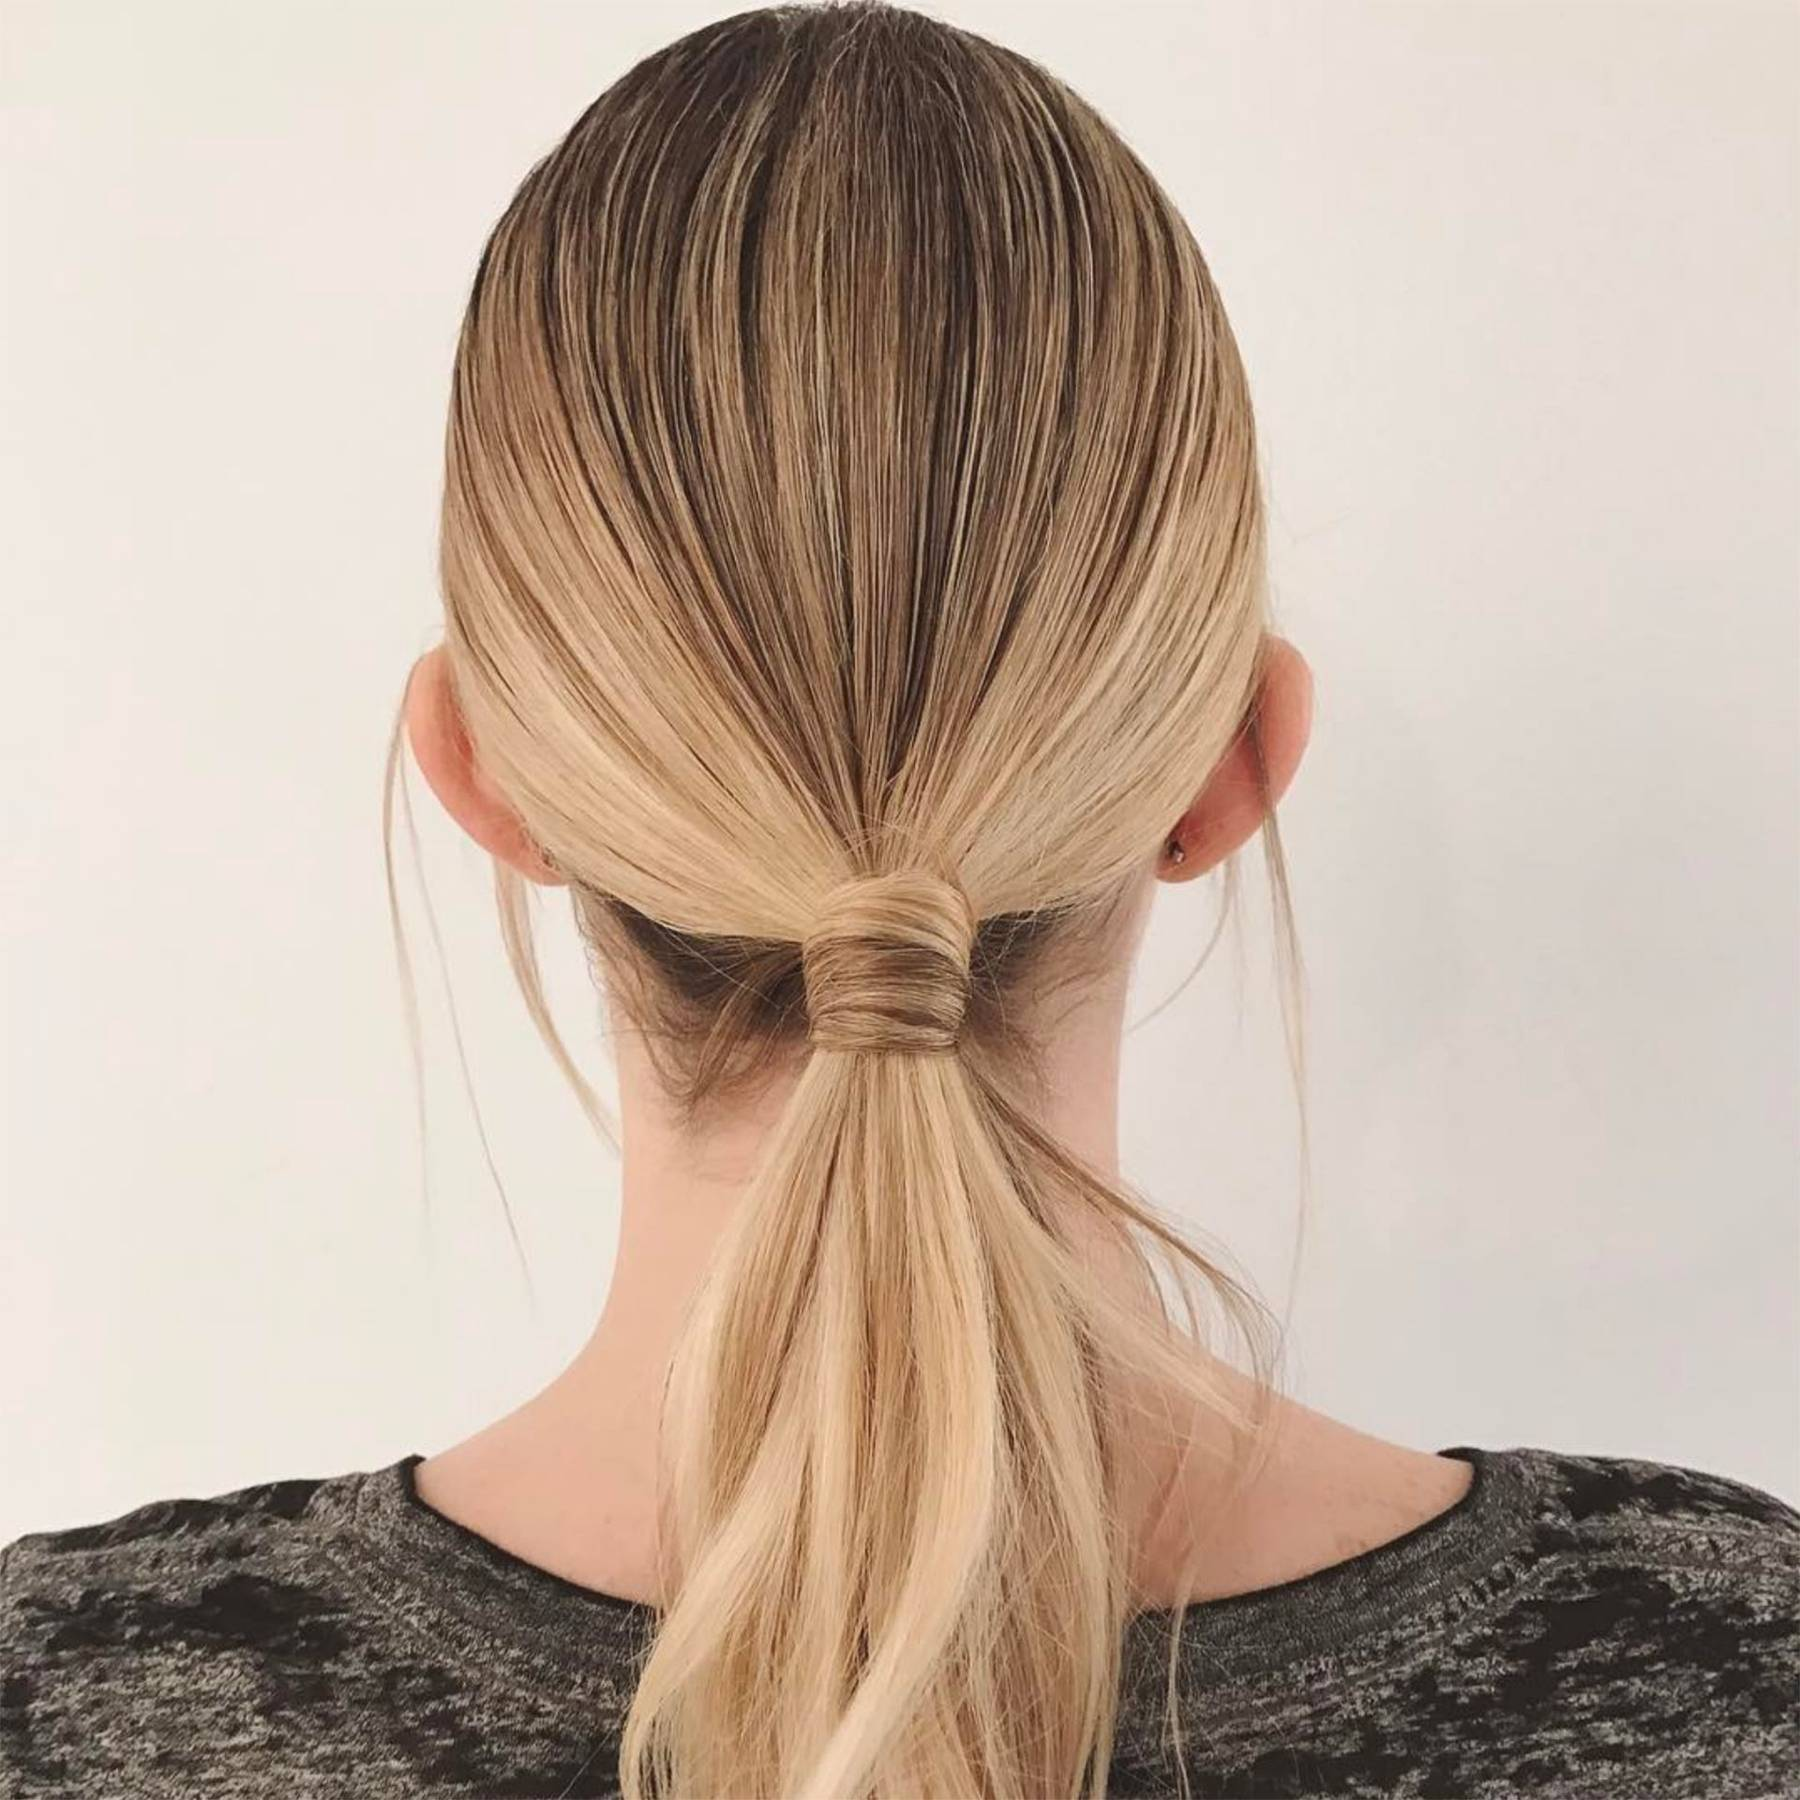 Ponytail Hairstyles 2019 Hair Up Ideas